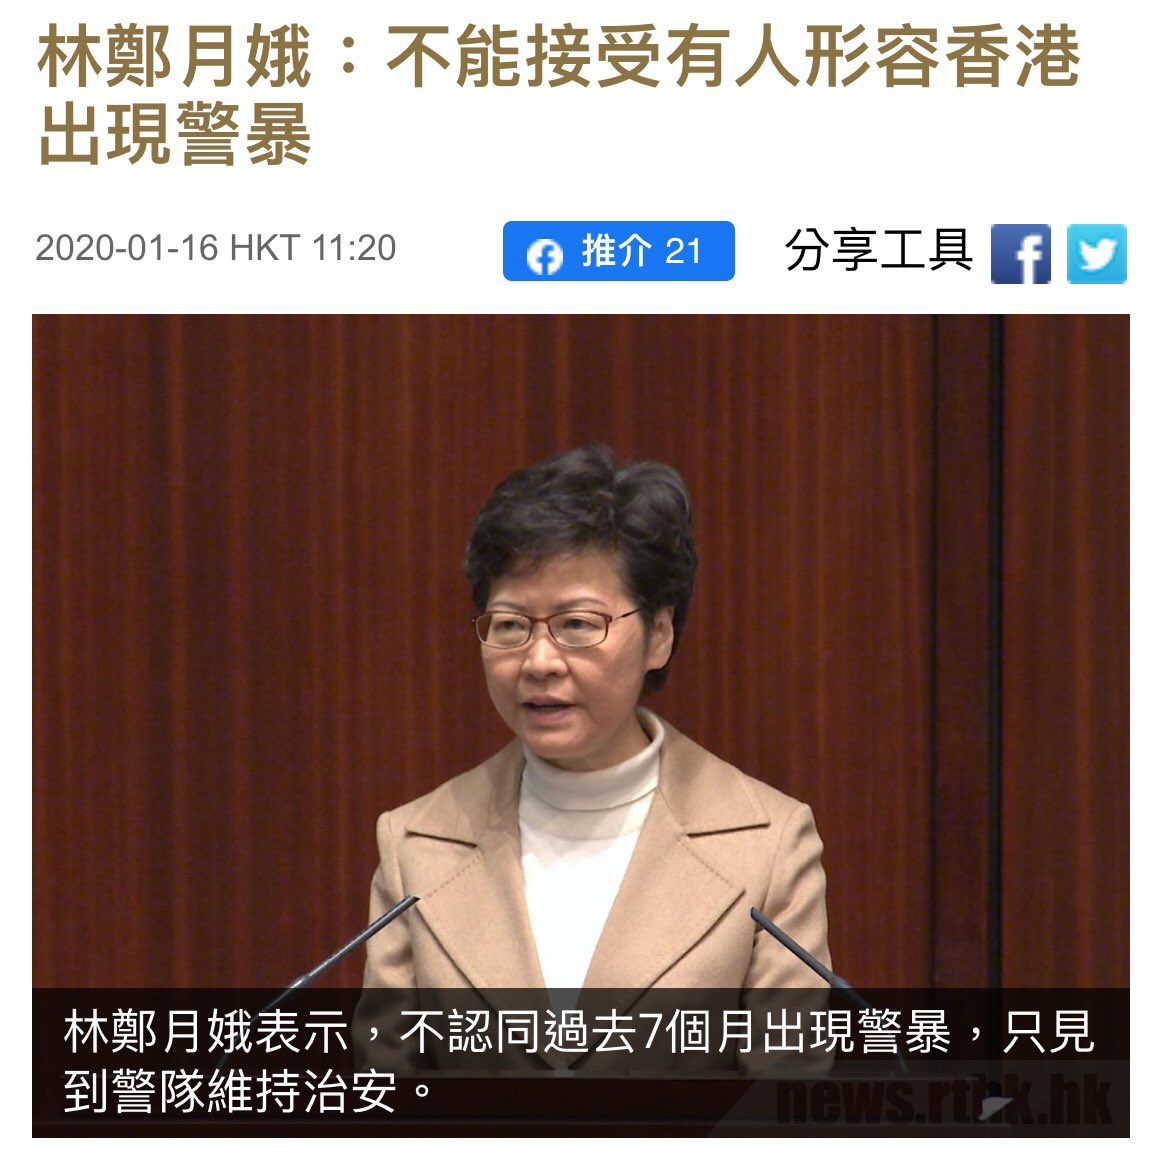 """#HongKongchief executive Carrie Lam said: """"It is unacceptable to call the enforcement operation in the last 7 months of the police as #PoliceBrutality. The police force is just maintaining the calm and the stability of the society  #HongKongProtests #StandWithHongKong<br>http://pic.twitter.com/W7UHso2P0r"""